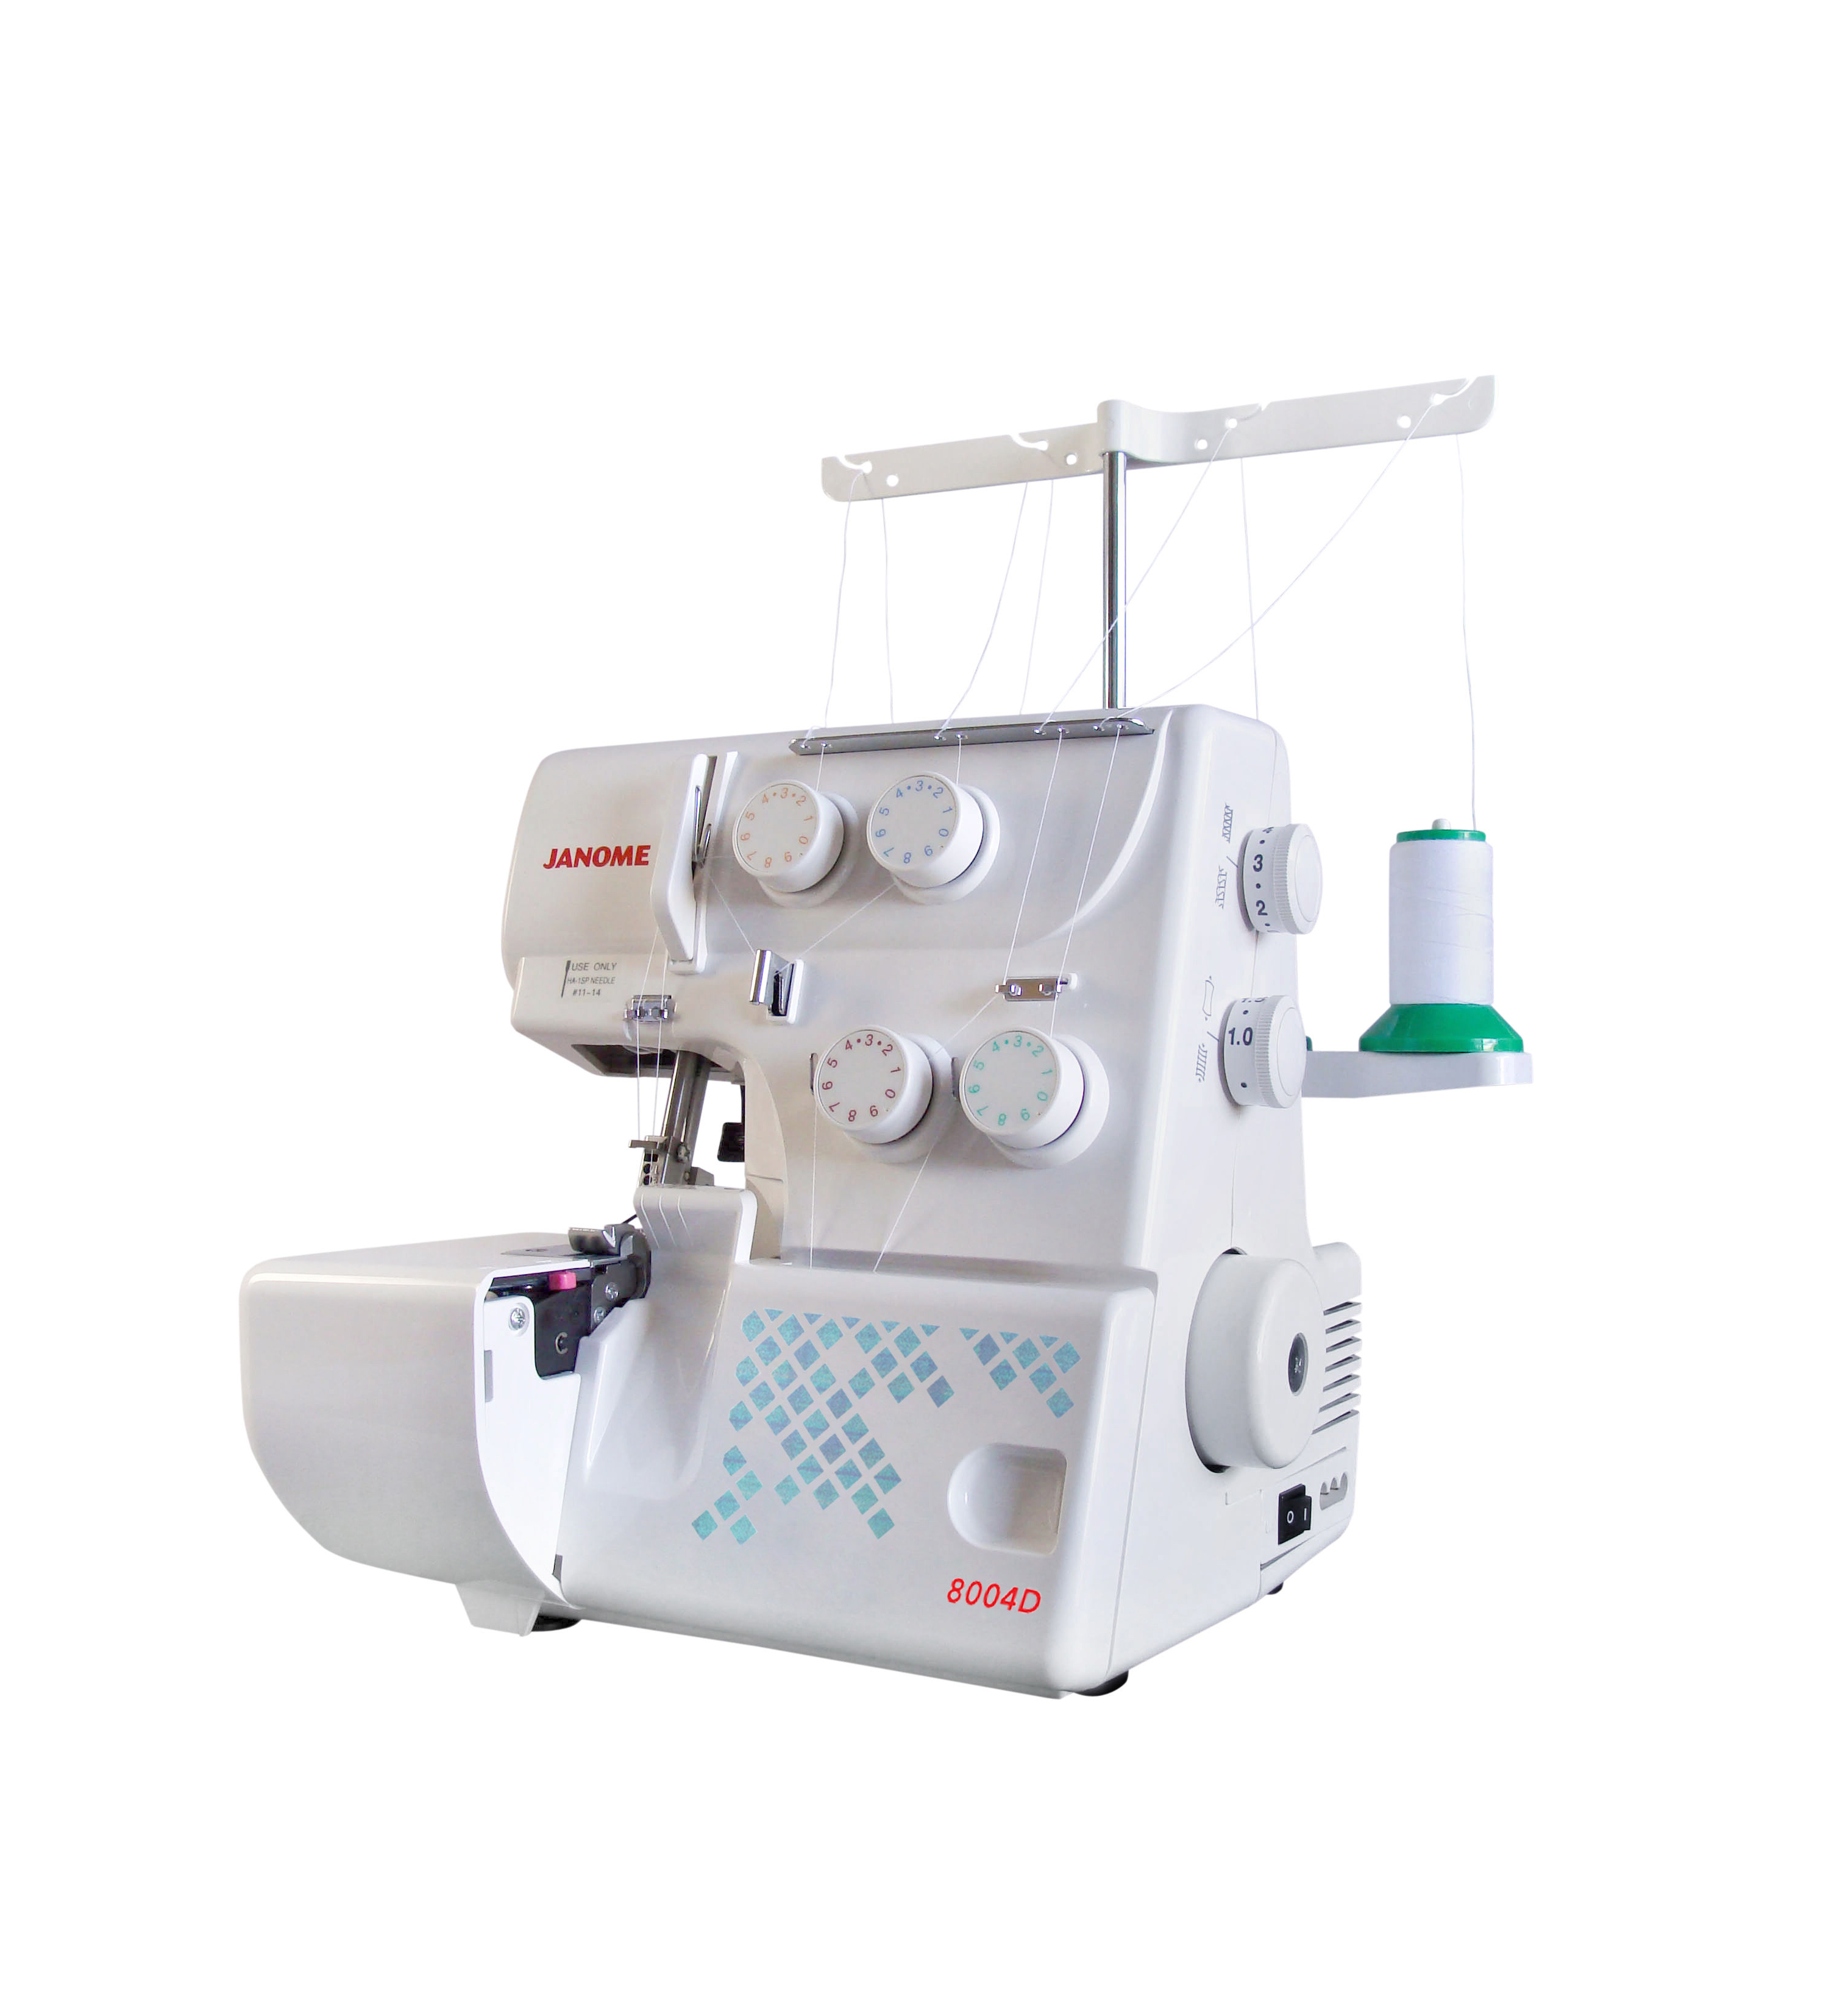 Janome 8004D Four Thread Overlocker Easy Basic Beginner Spotlight Cheap Discount Free Lessons Differential Feed Stretch Fabric Cotton Wovens Lower Looper Tensions